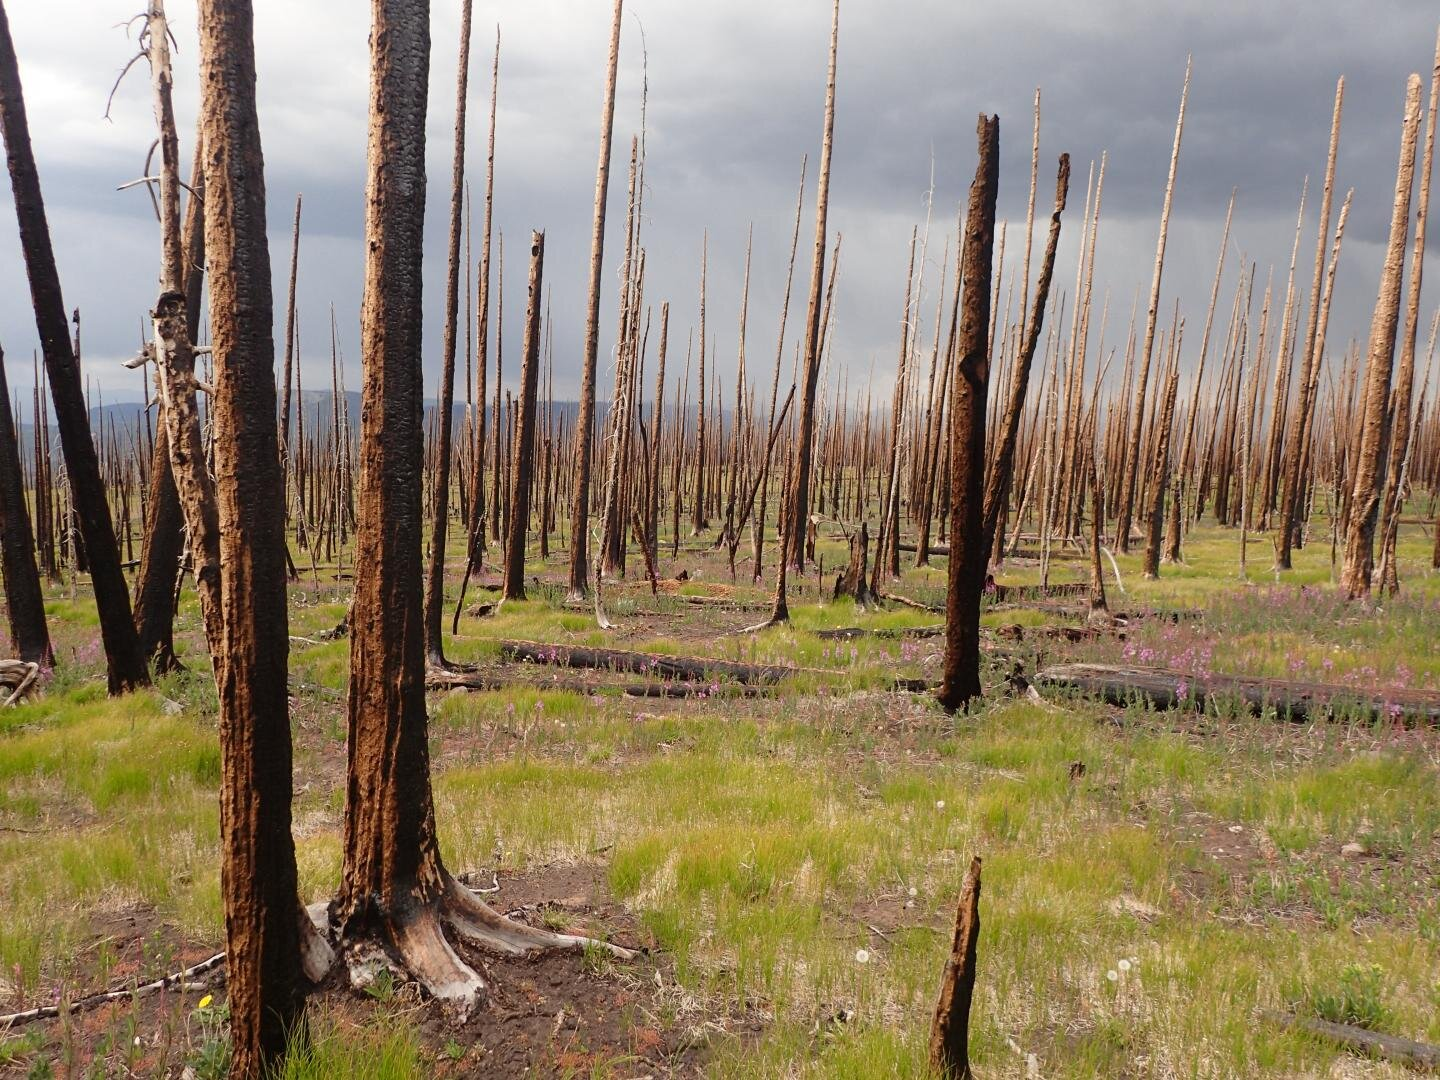 photo of As wildfires flare up across West, research highlights risk of ecological change image